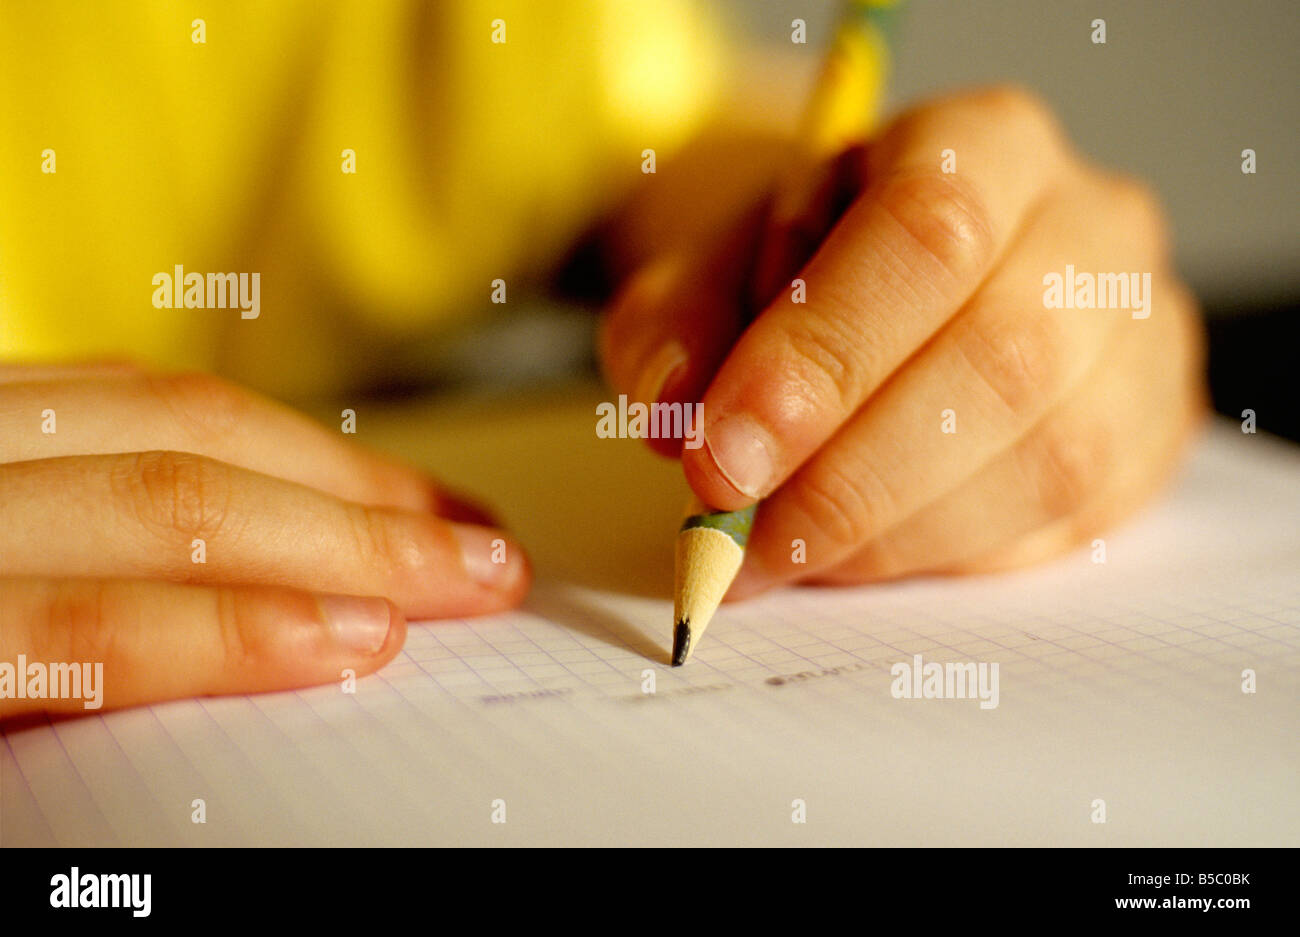 Hands of young left handed child doing homework - Stock Image